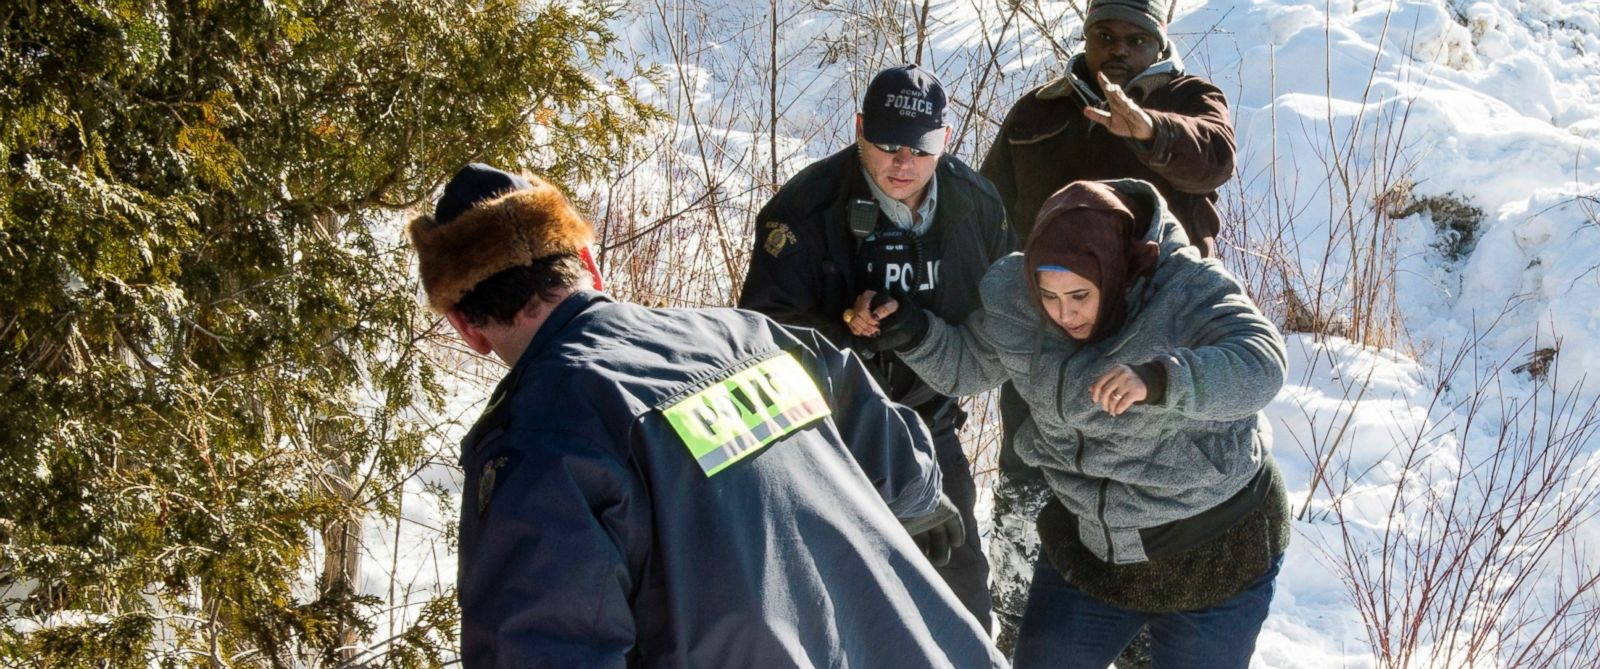 PHOTO: A pregnant woman from Somalia is escorted by Royal Canadian Mounted Police officers after crossing the U.S.-Canada border near Hemmingford, Quebec on Feb. 17, 2017.